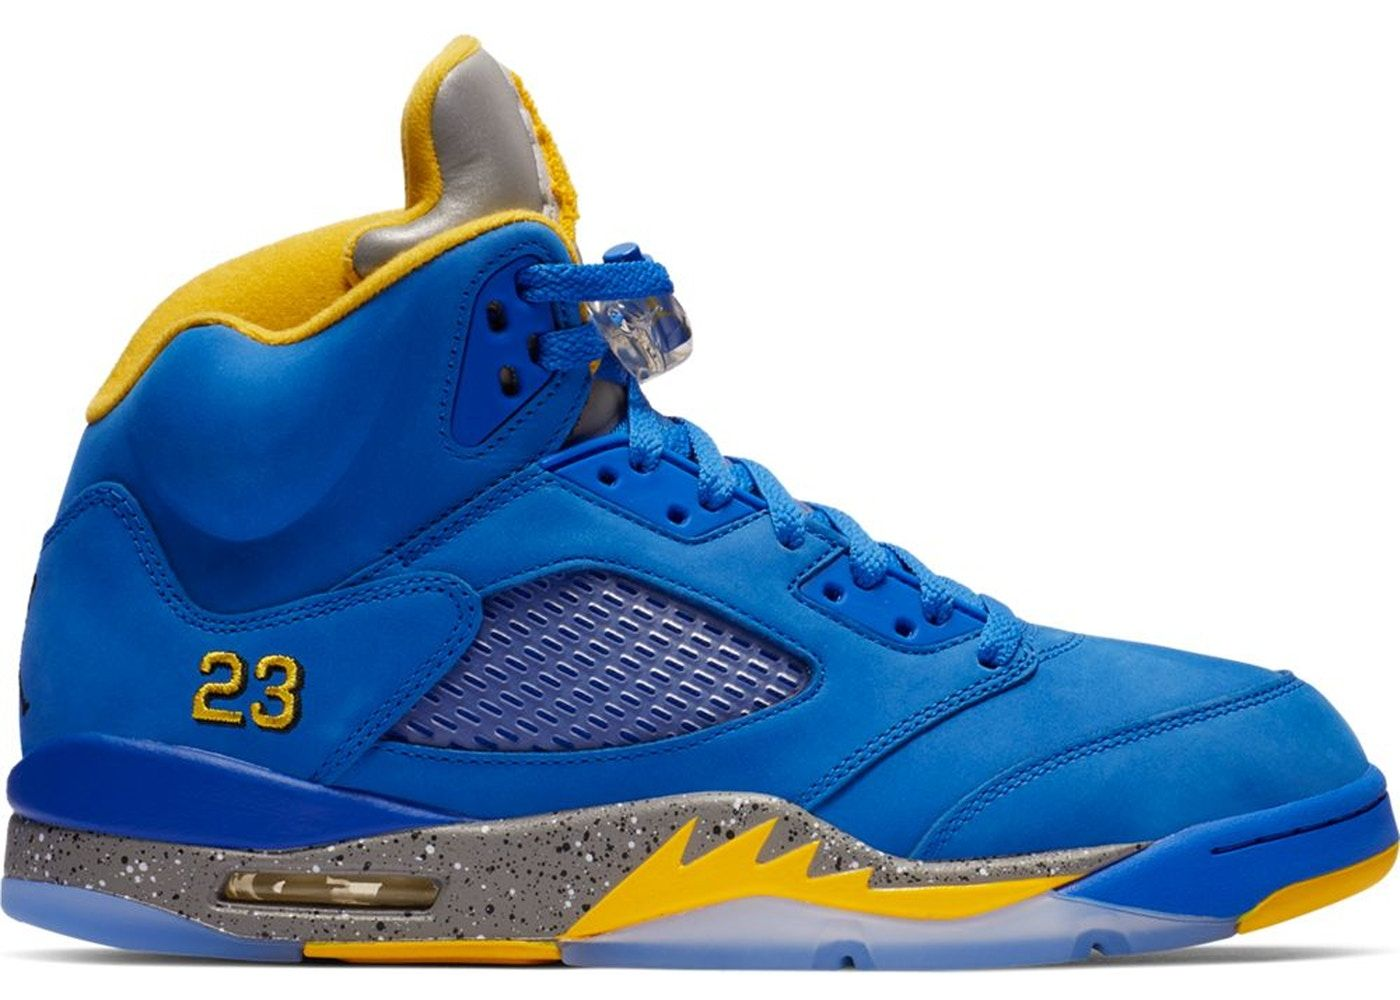 best sneakers 6965a 5268f Jordan 5 Retro JSP Laney Varsity Royal in 2019 | shoes ...